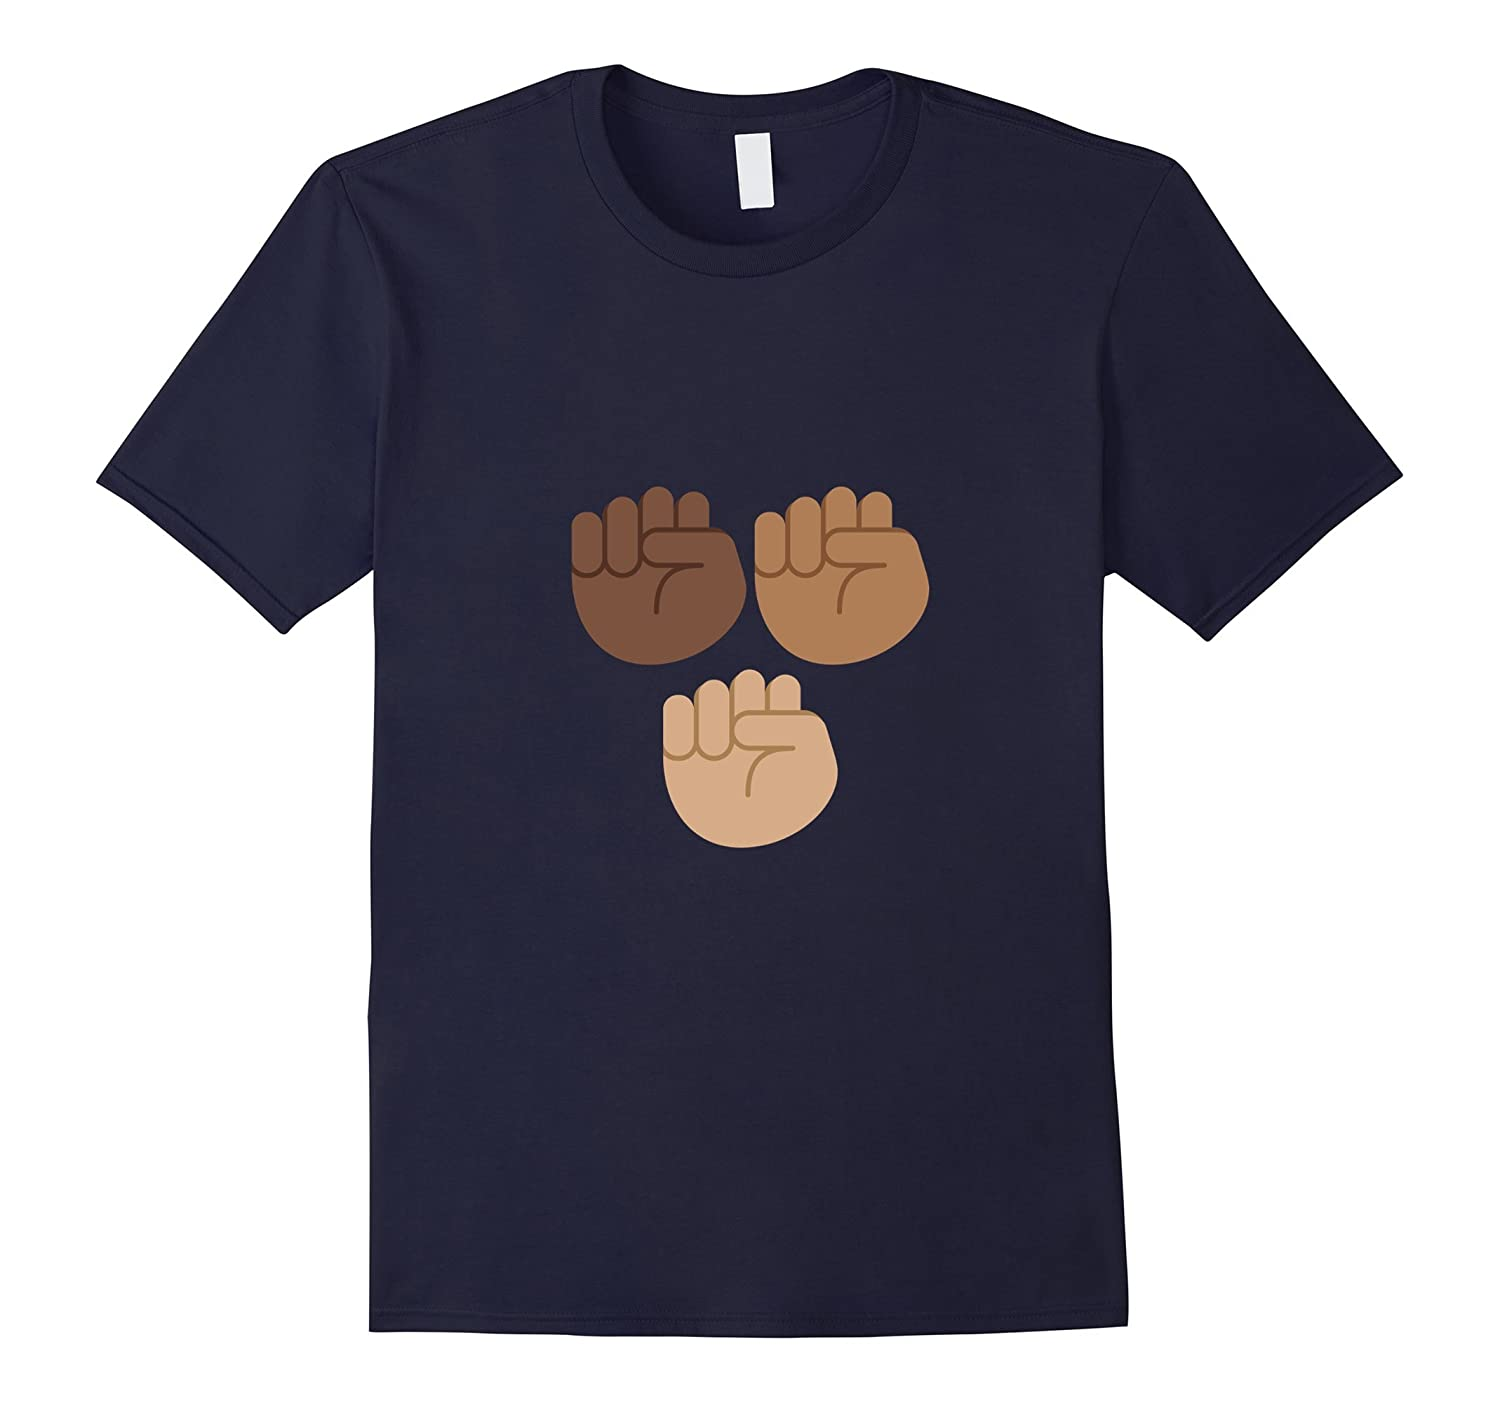 #BlackLivesMatter Three Raised Fists Emoji T-Shirt-Rose